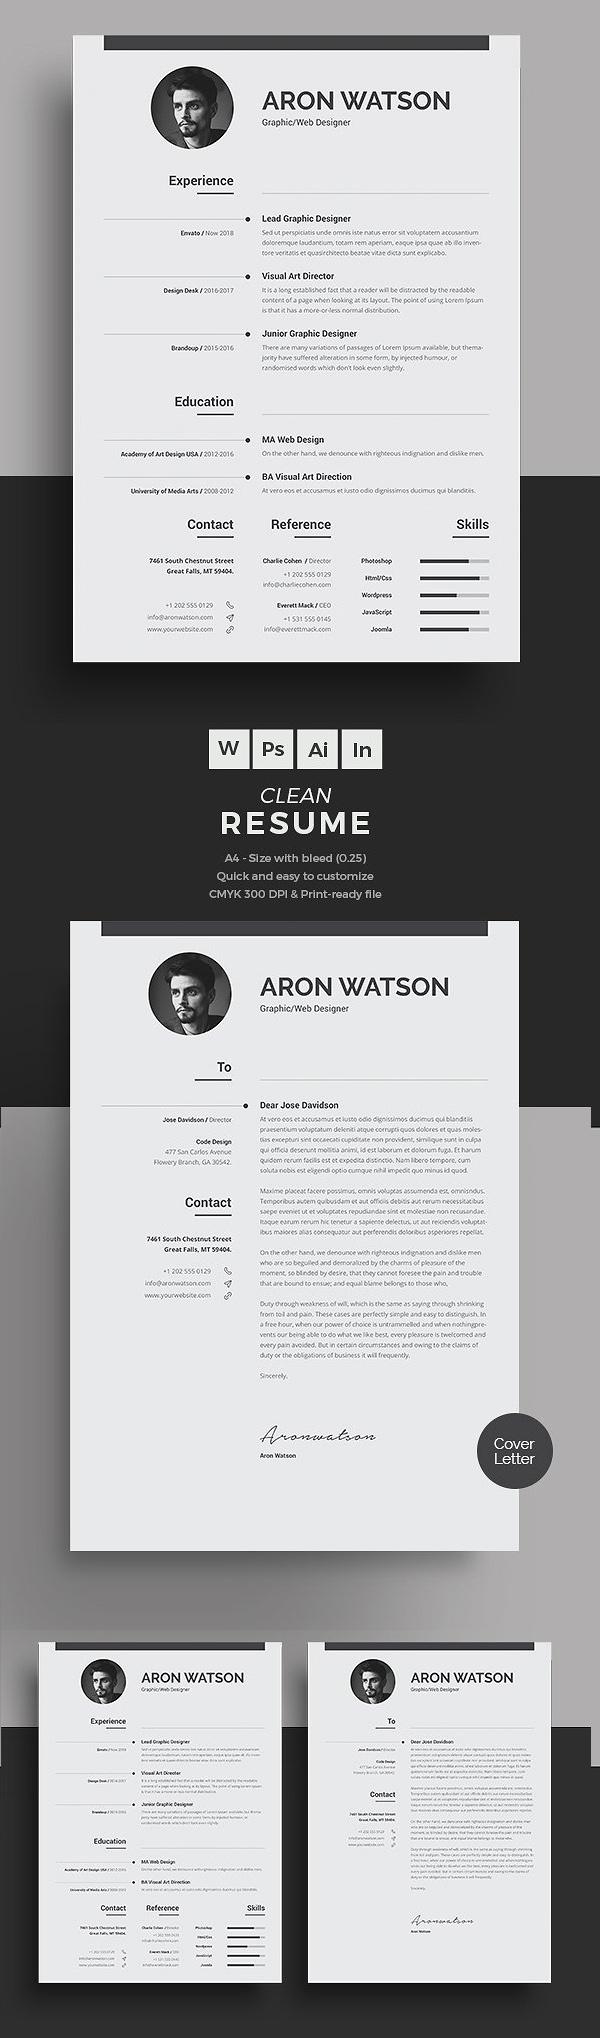 best fonts graphic design resume best resume font graphic design sample customer service resume best fonts for resume graphic design